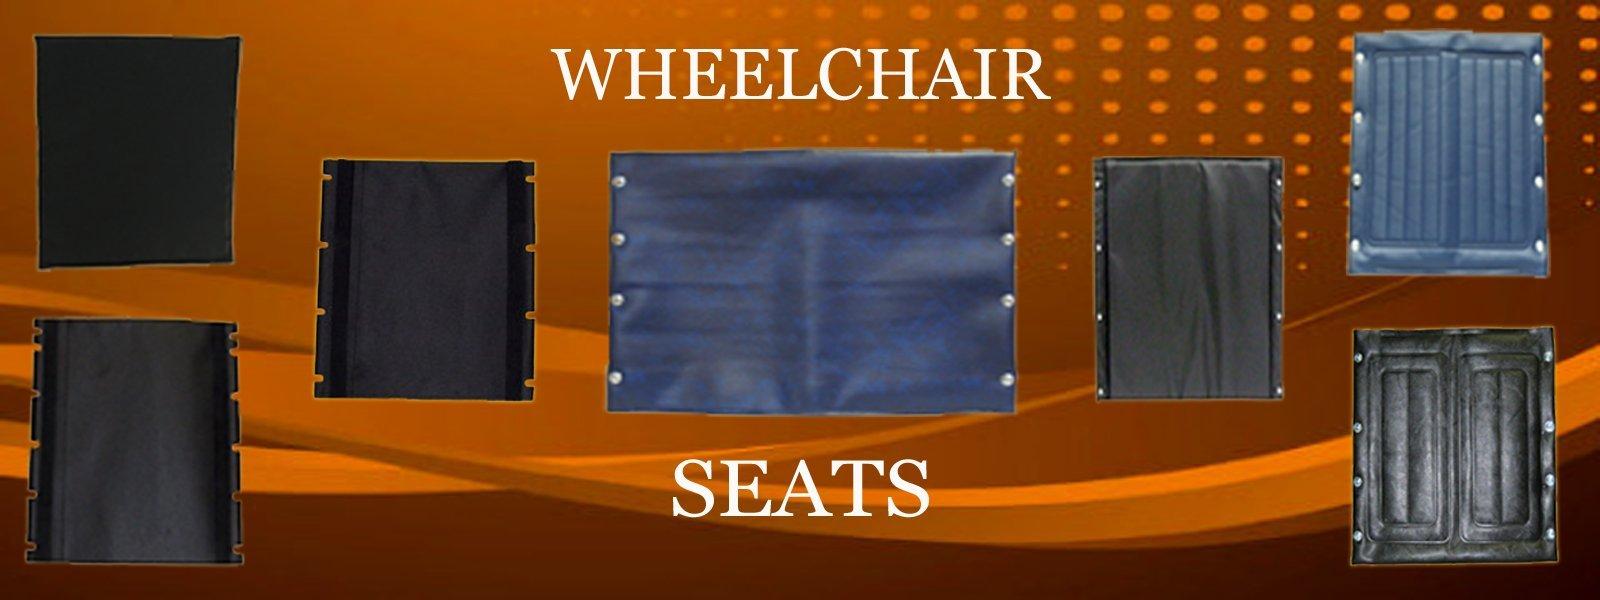 Wheelchair Seats